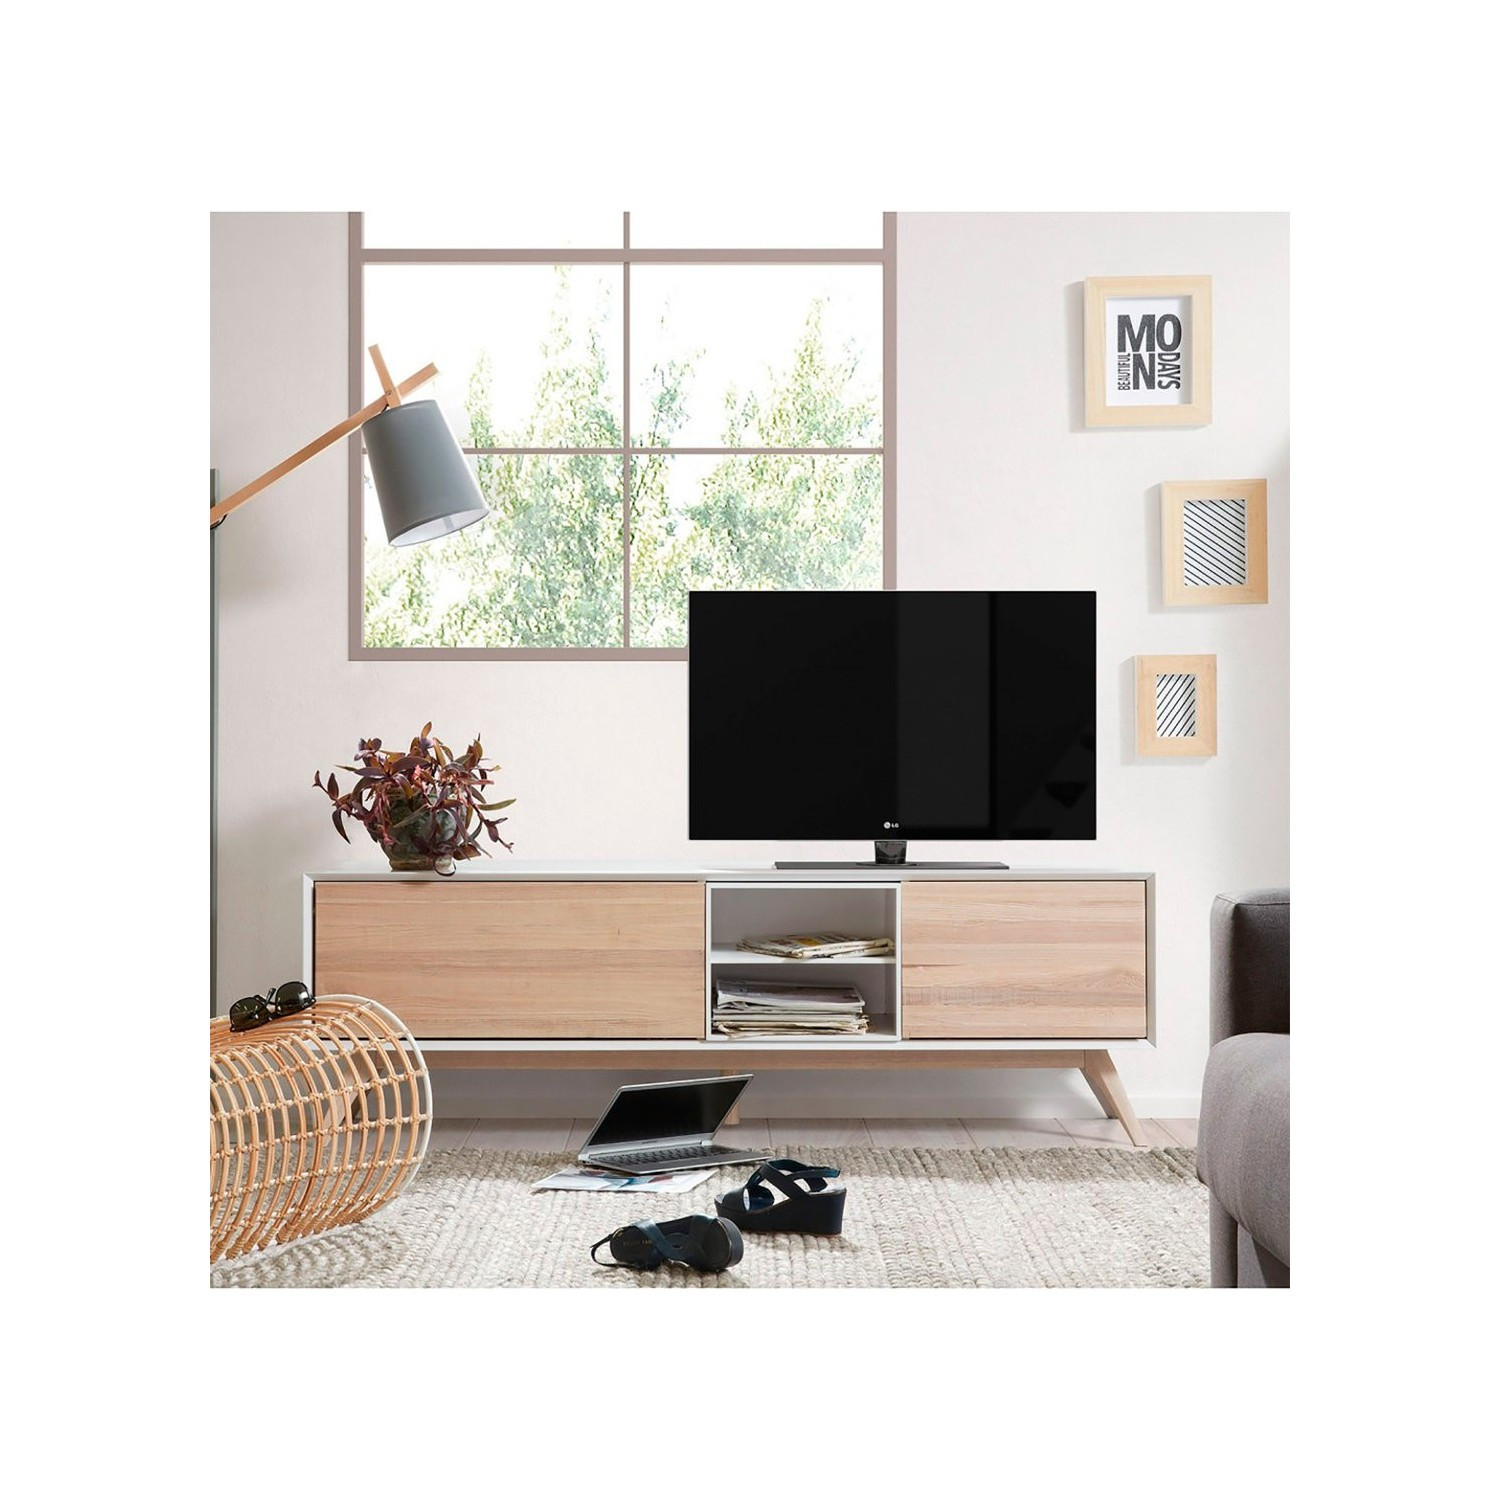 Mueble Tv Estilo nordico Perfecto Mueble Tv nordico Quattro Con 2 Puertas Demarques Of Mueble Tv Estilo nordico Adorable Mueble Tv Estilo Nórdico En Nogal Americano